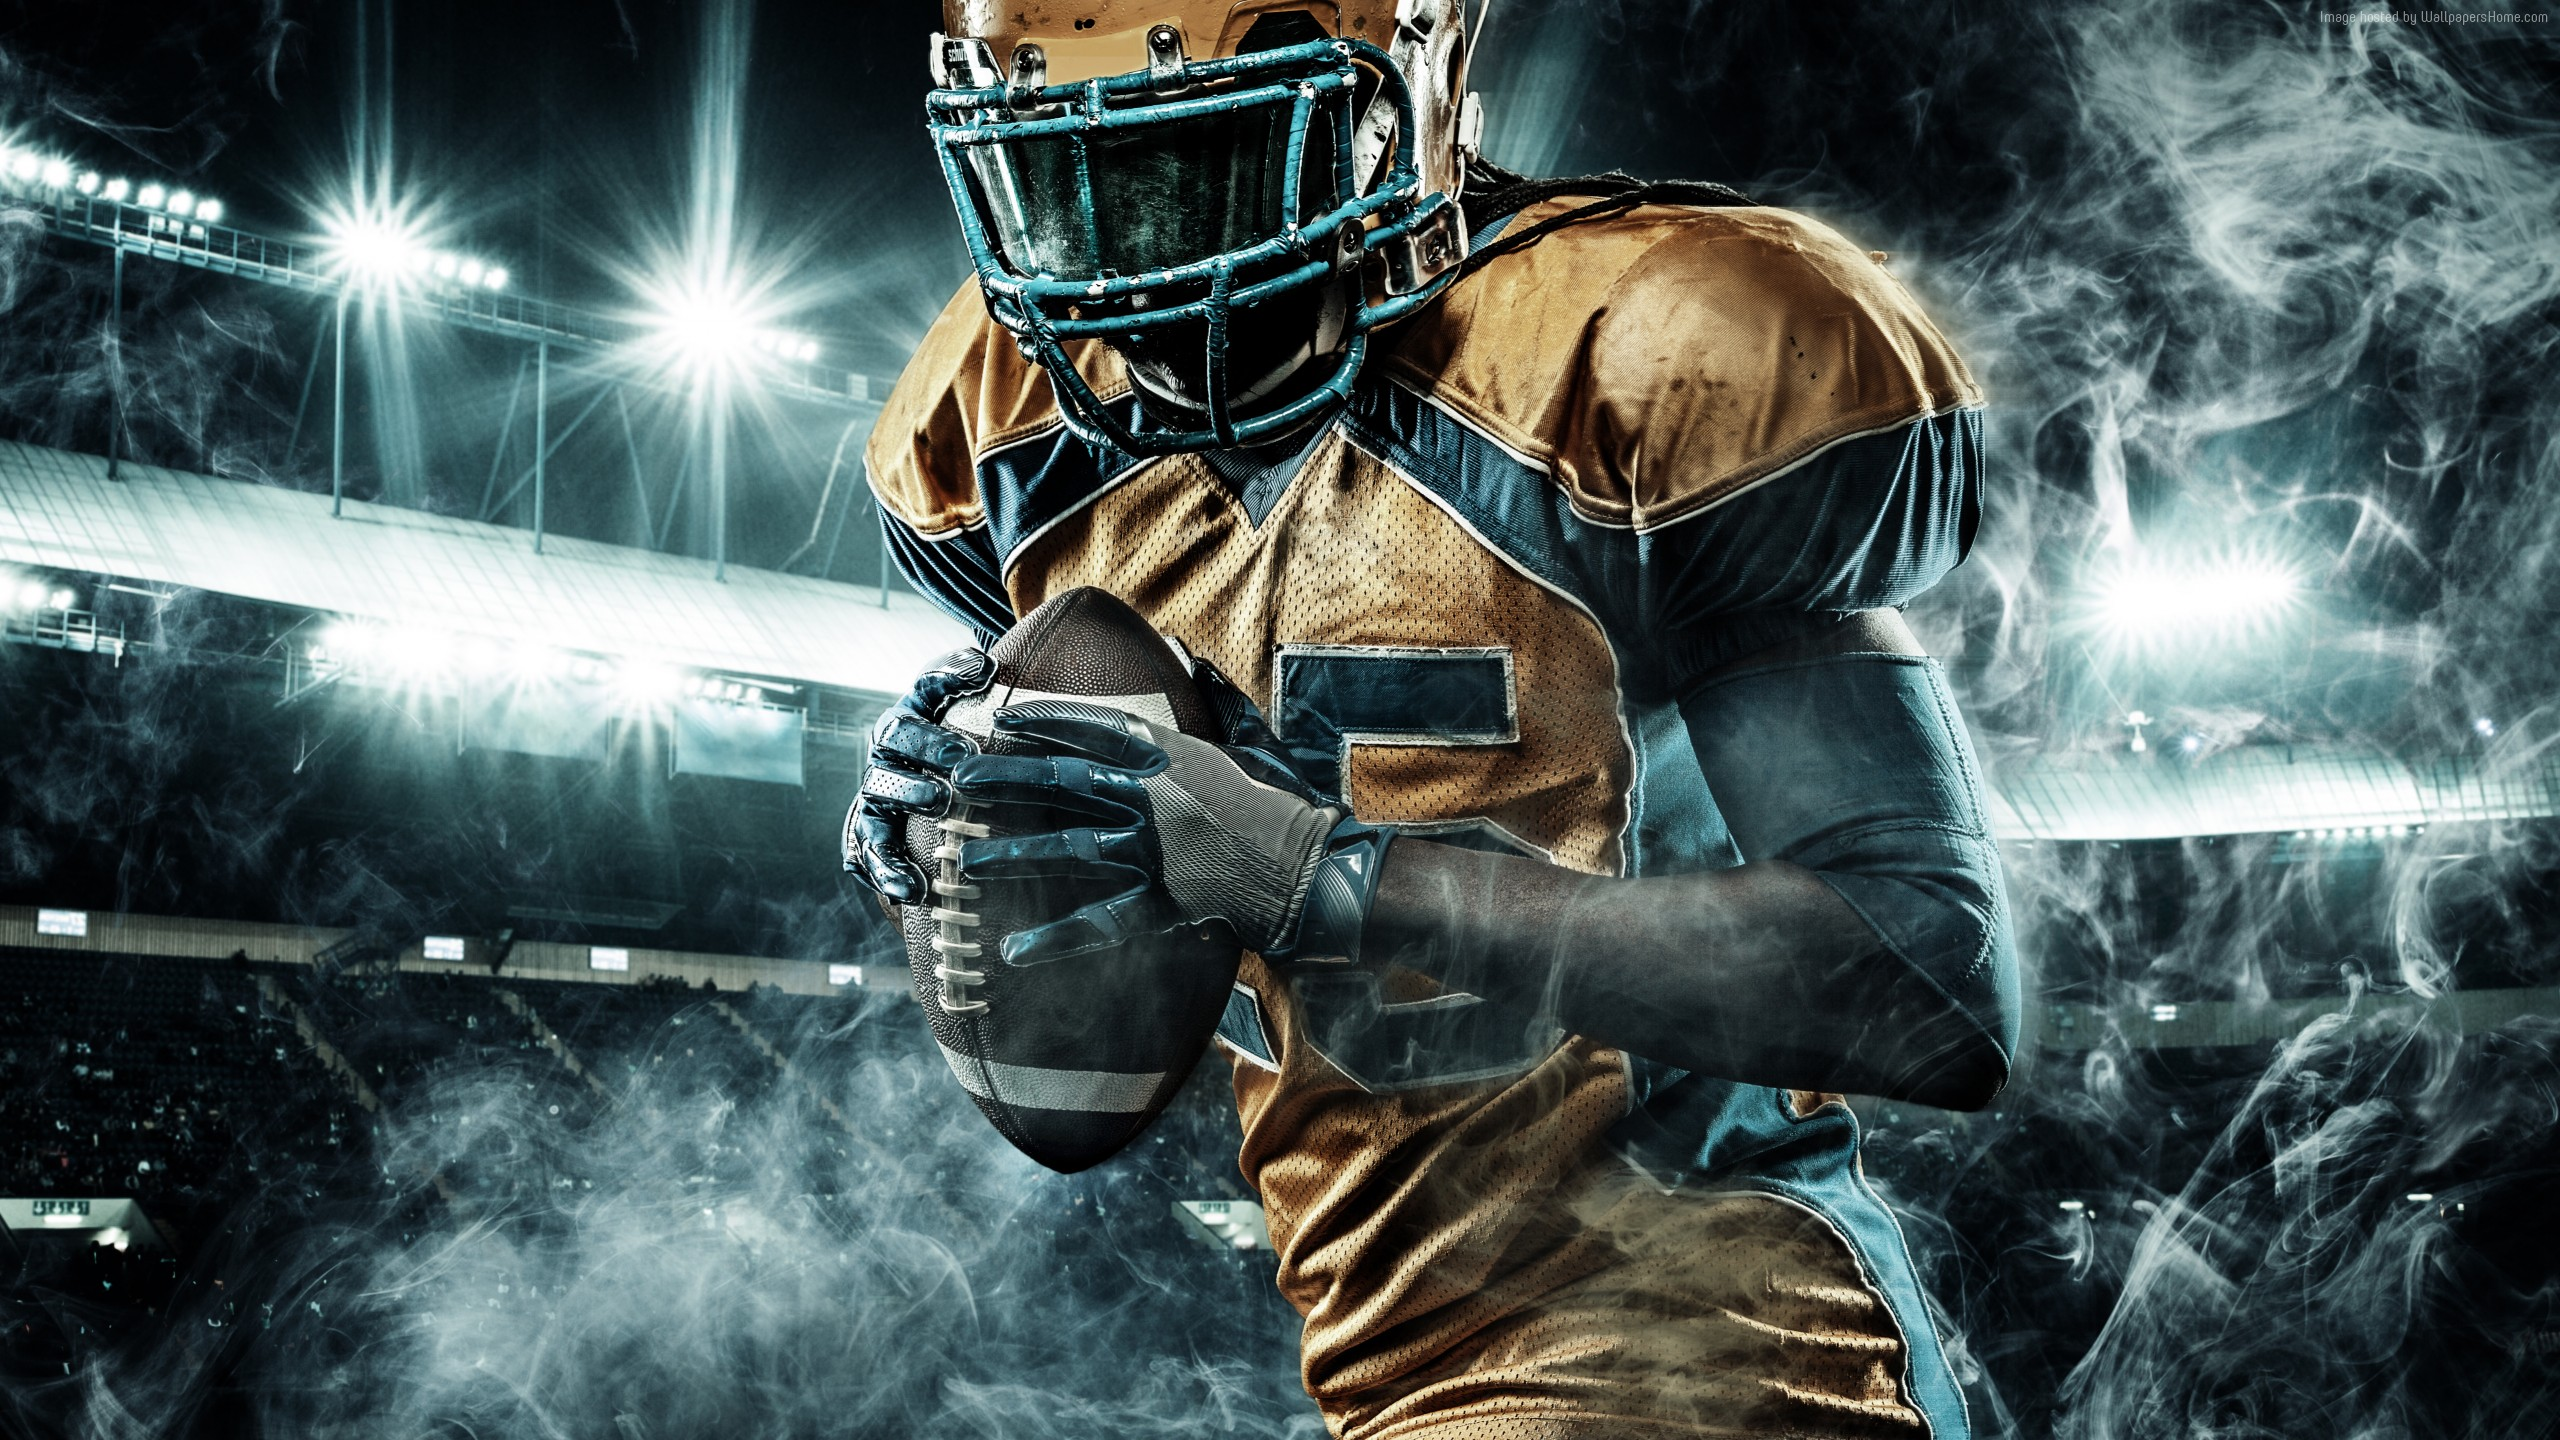 American Football Wallpapers Maker Pro: Wallpaper Of Rugby, American Football, Smoke Background